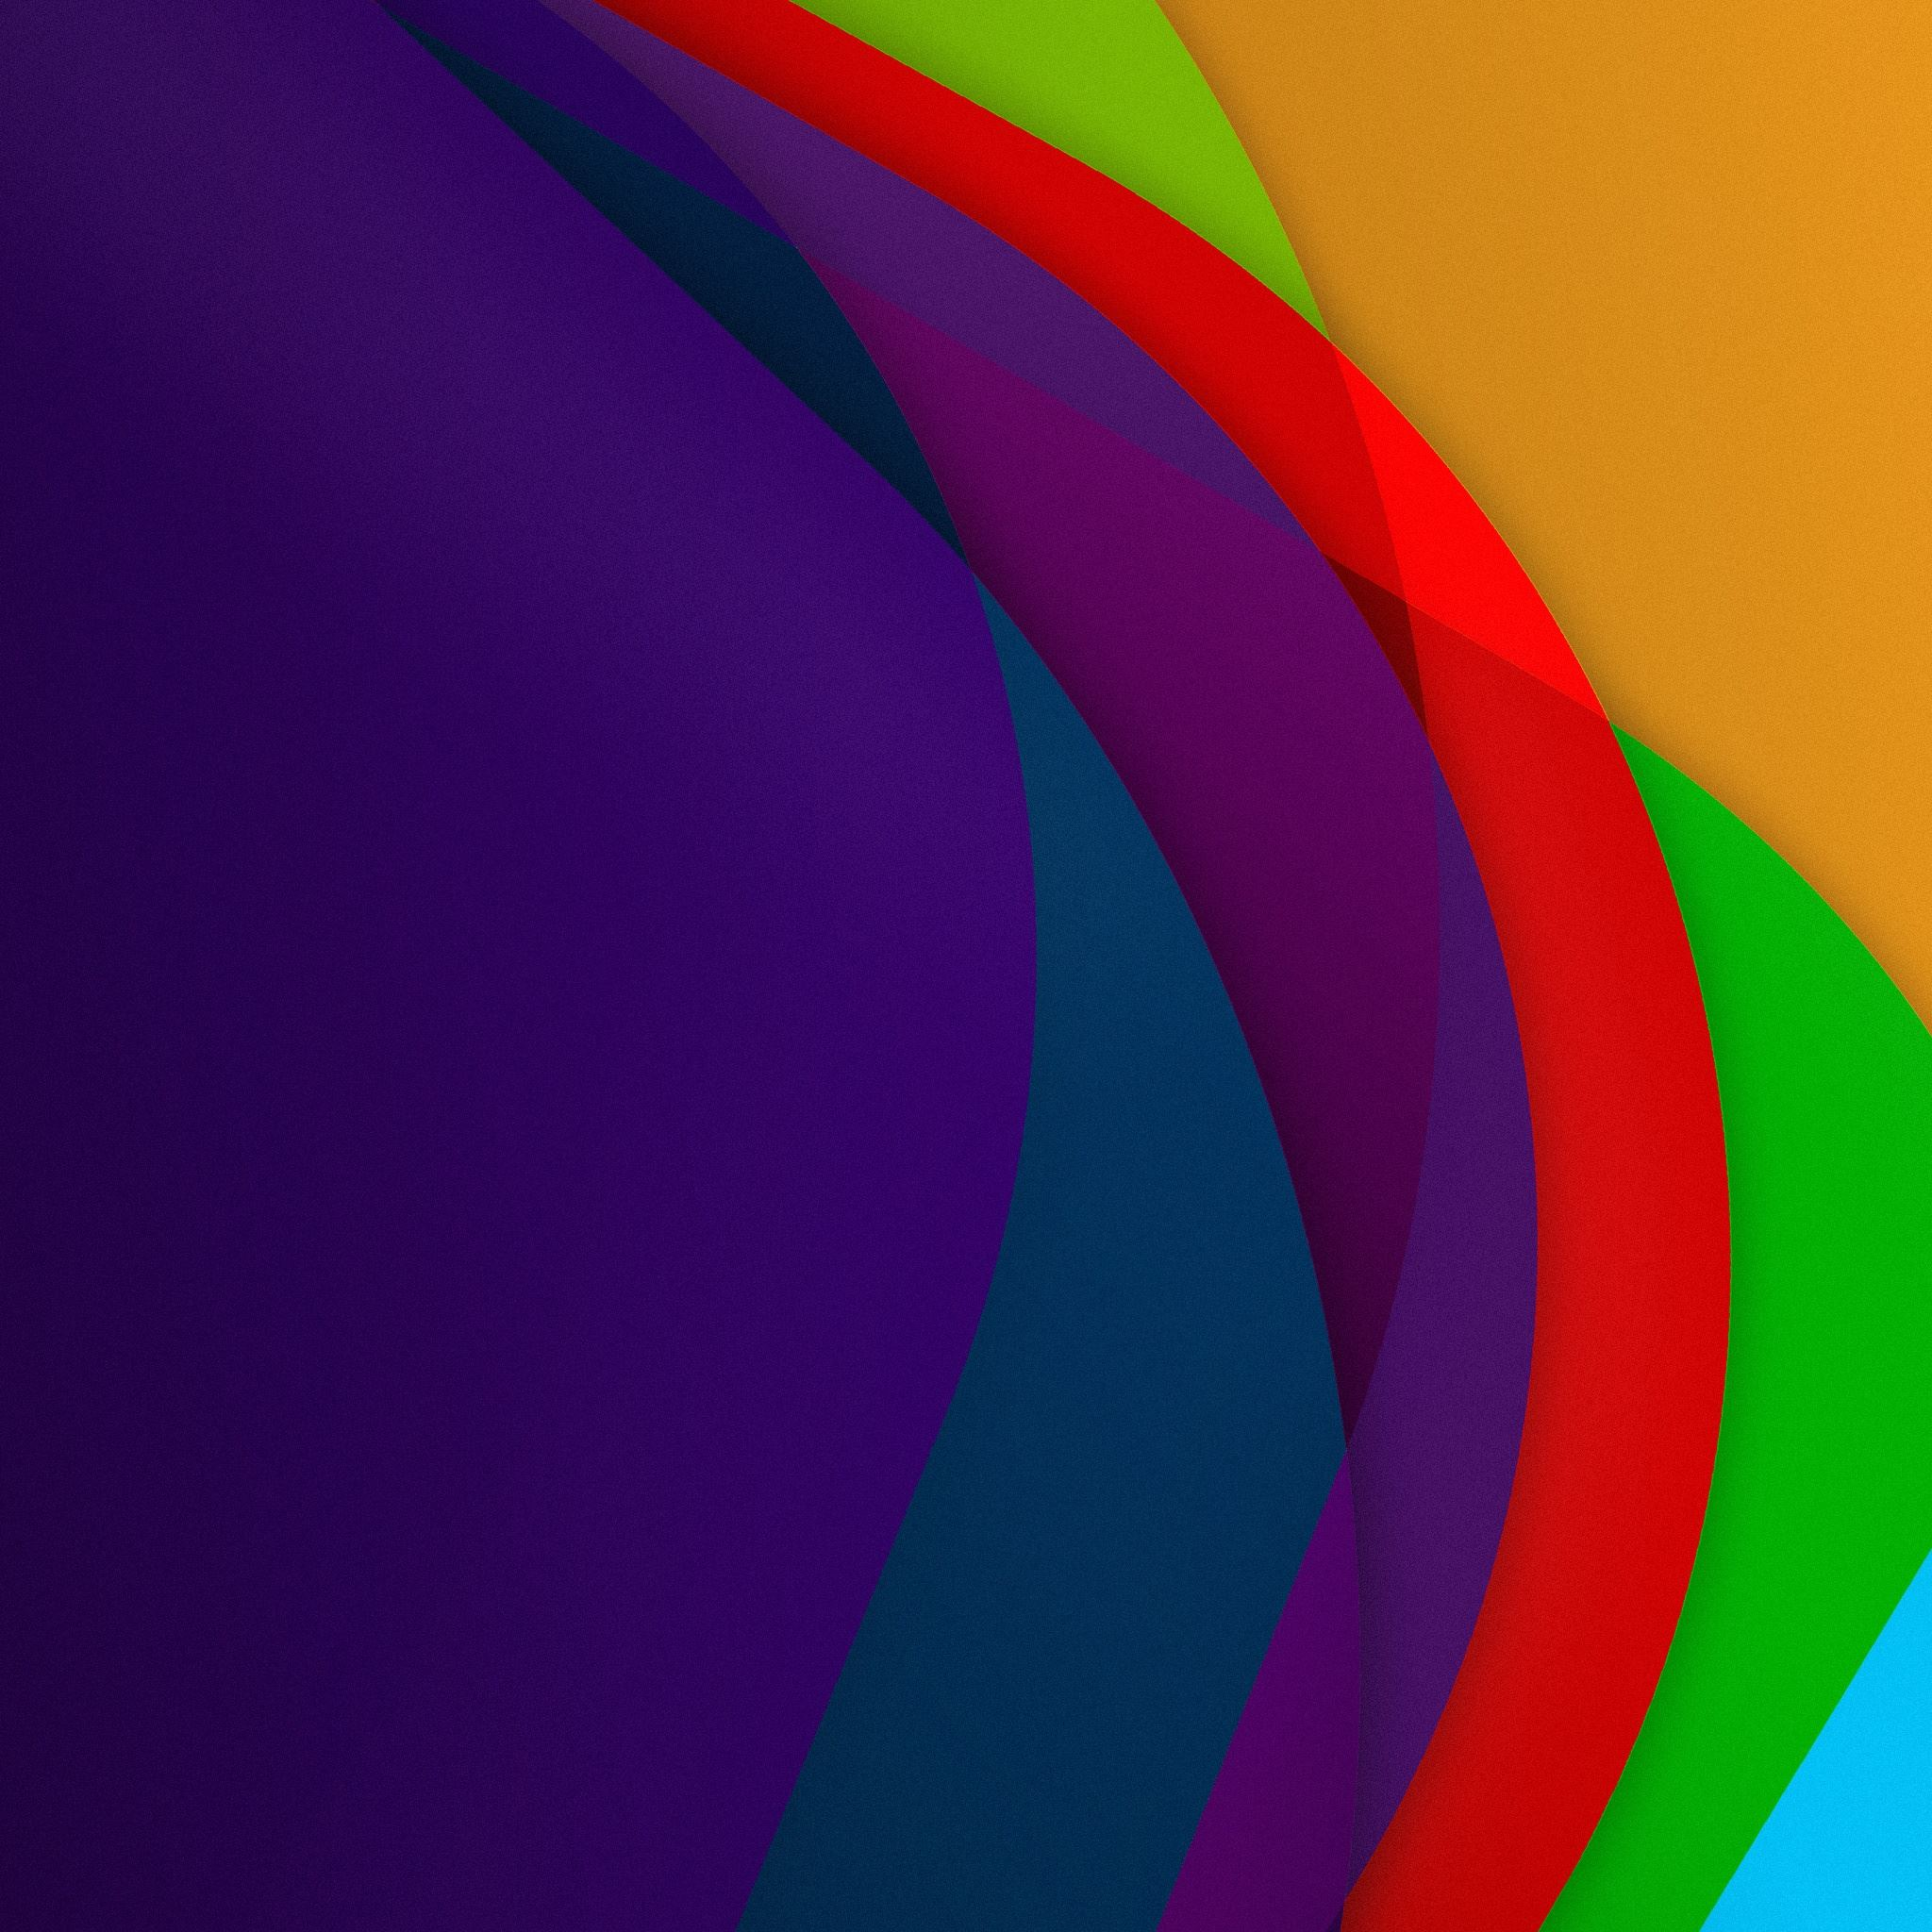 Colorful Iphone Wallpaper: IOS 7 Colorful Lines Background IPad Air Wallpaper